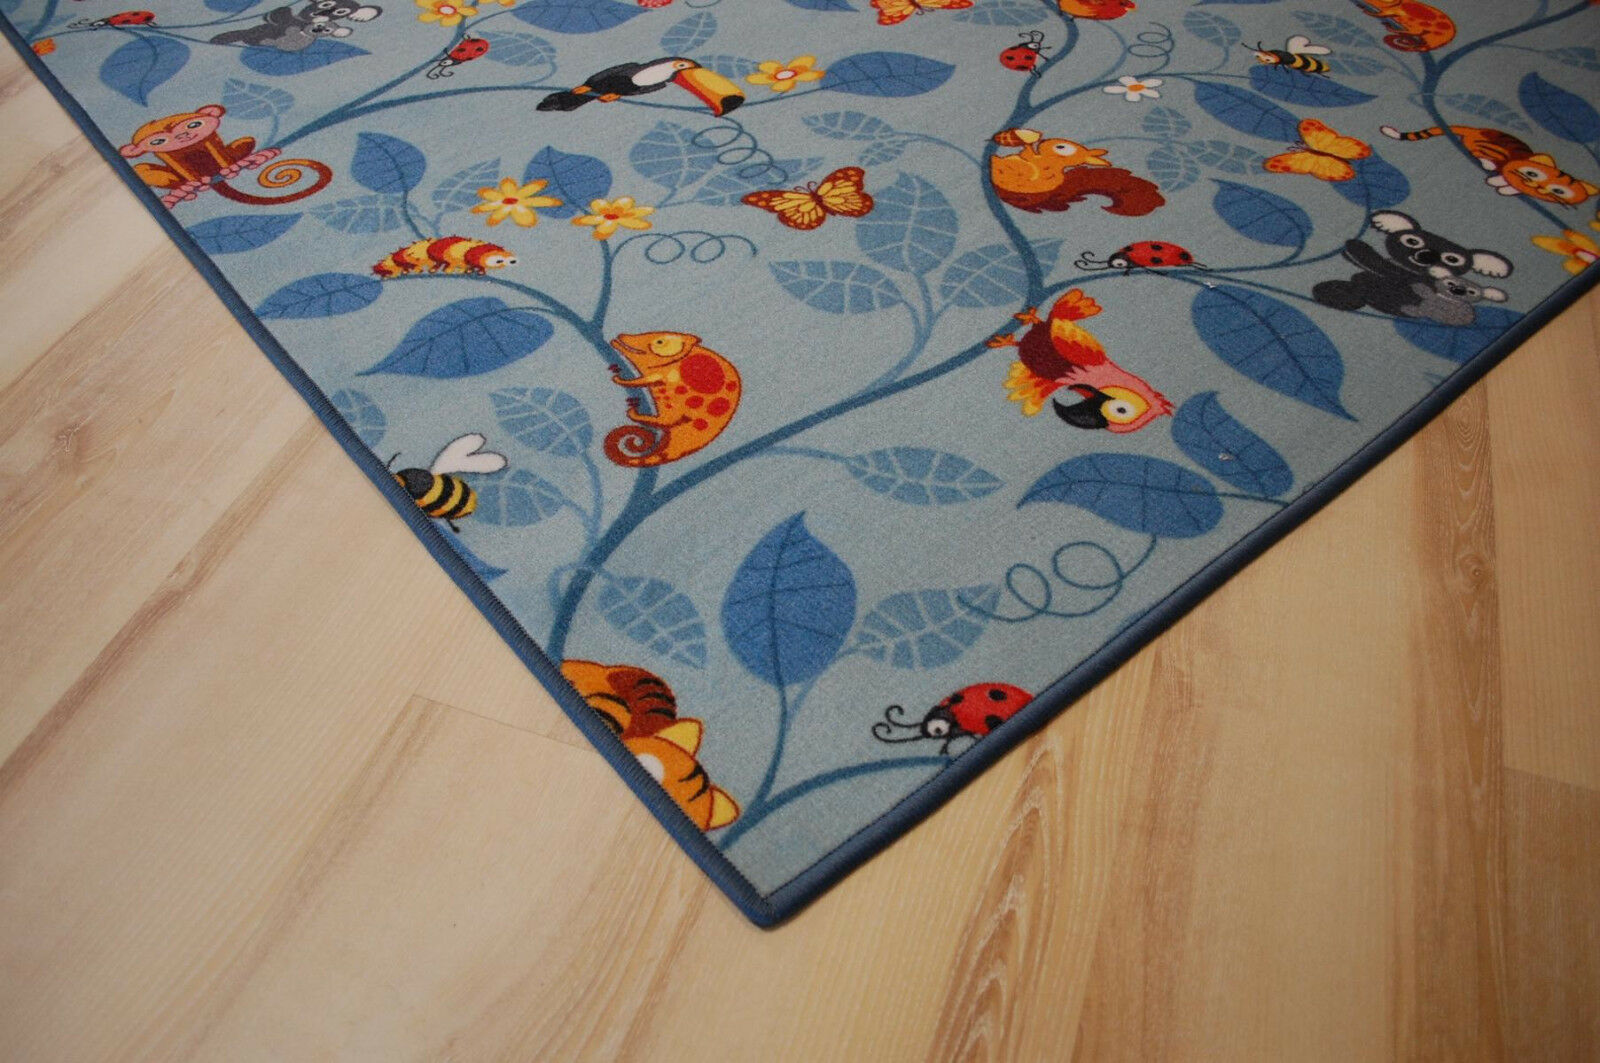 Enfants Tapis Tapis de jeu JUNGLE velours bleu 400x520 cm JUNGLE ANIMAUX